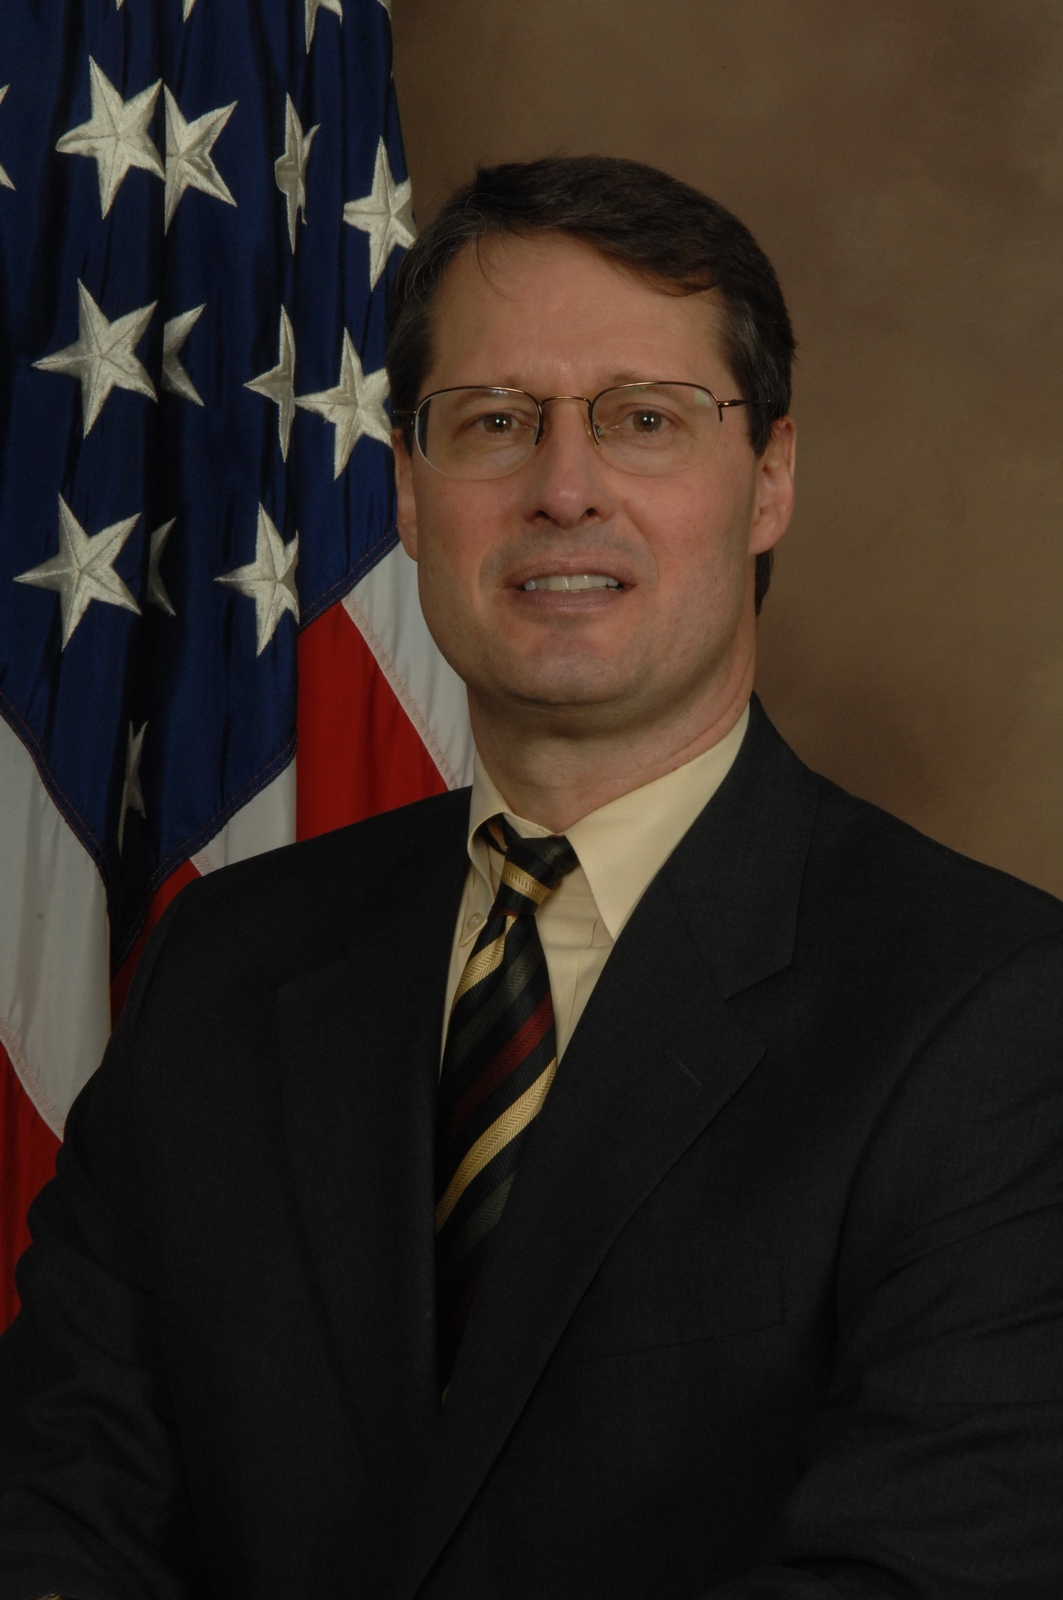 Mark Johnston, Official Portrait - Official portrait of Mark Johnston, Deputy Assistant Secretary for Special Needs Programs in the Office of Community Planning and Development